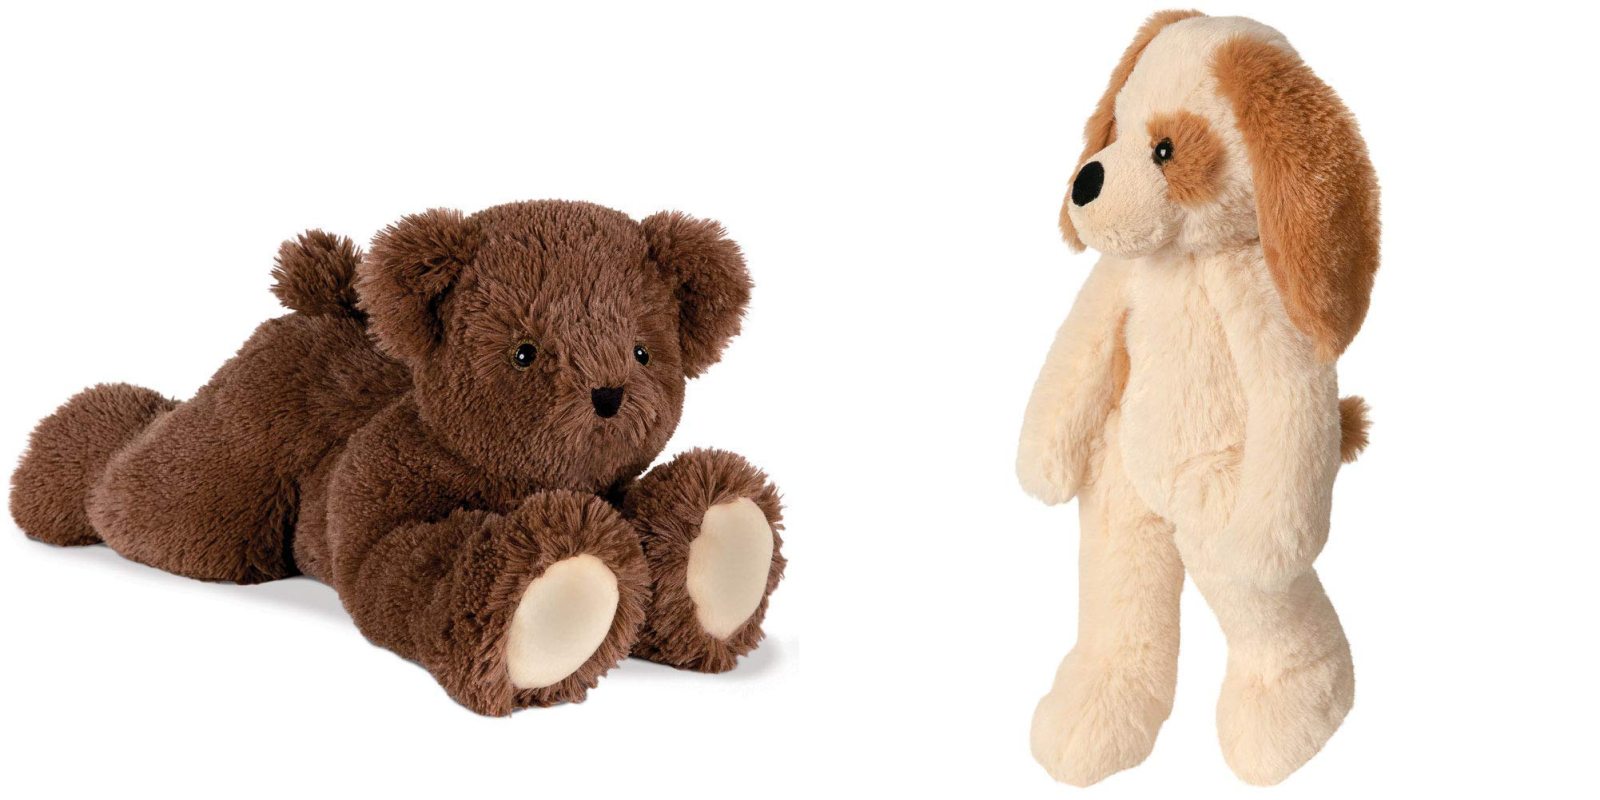 These adorable Vermont Teddy Bear dolls can be yours from $11 Prime shipped (Reg. $40)